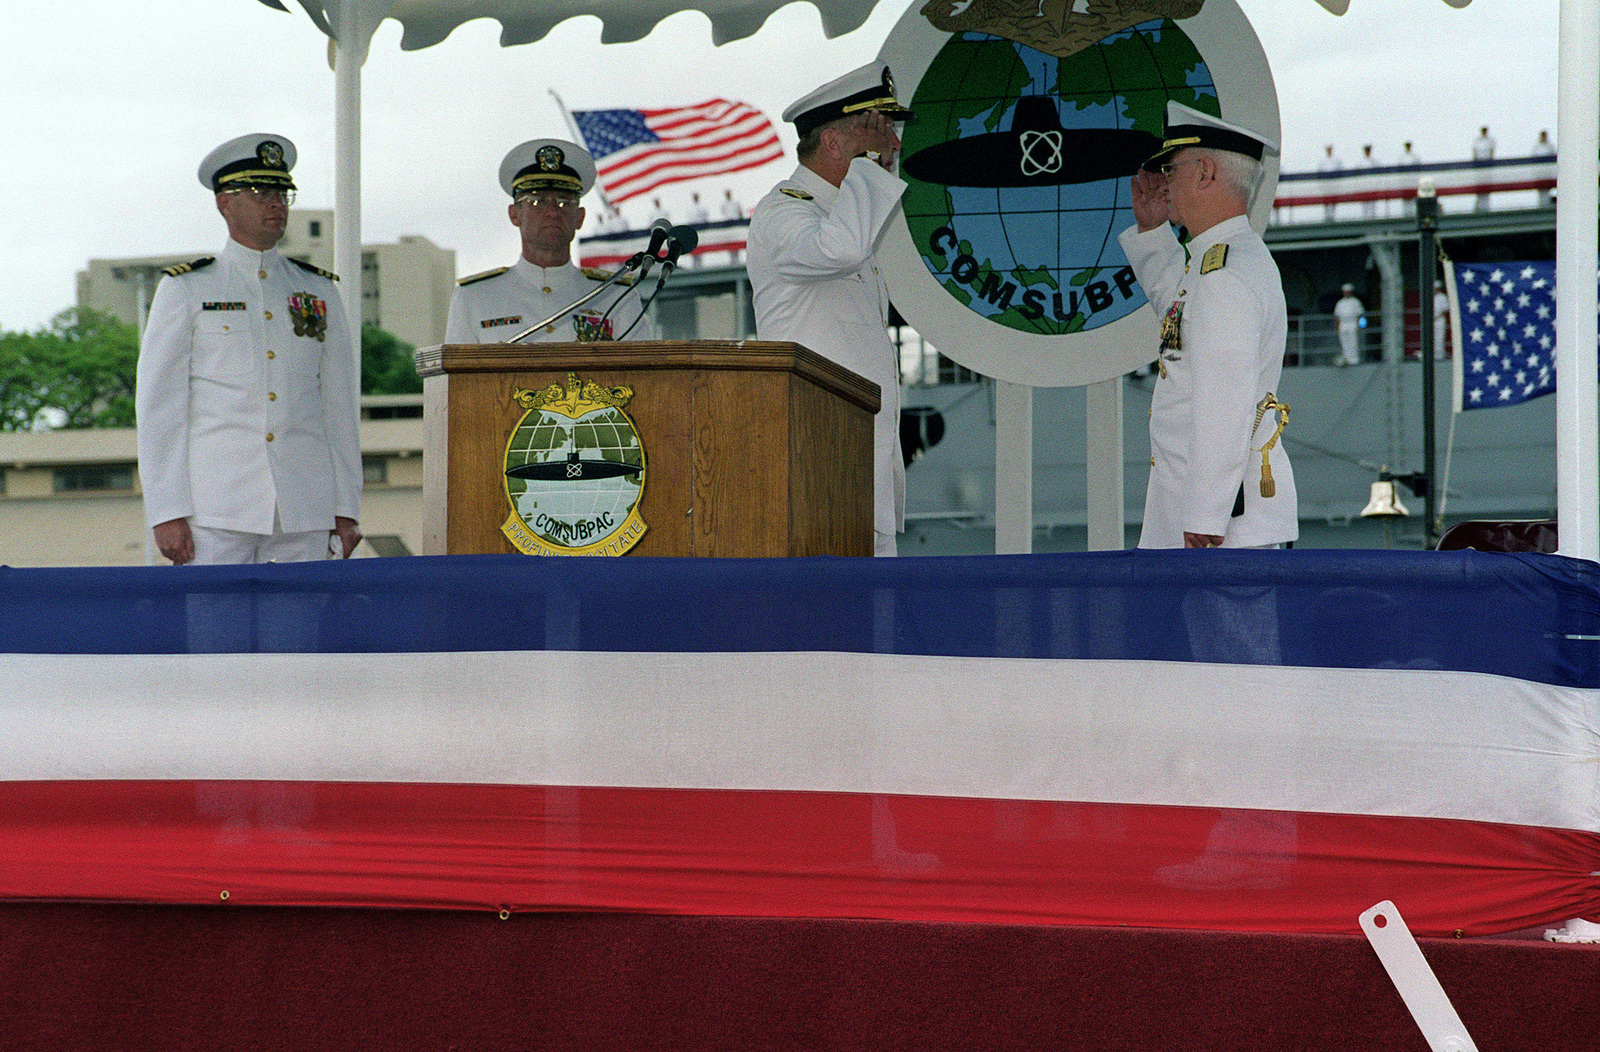 """US Navy Rear Admiral (Upper Half) (RADM) Albert H. Konetzni Jr. relieves RADM (UH) Winford G. """"Jerry"""" Ellis, USN, as Commander Submarine Force Pacific during Change of Command Ceremony held aboard the attack submarine USS BREMERTON (SSN 698), Pearl Harbor, Hawaii, 8 May 1998. In background is the presiding officer, Admiral Archie R. Clemins, USN, Commander-in-CHIEF US Pacific Fleet"""